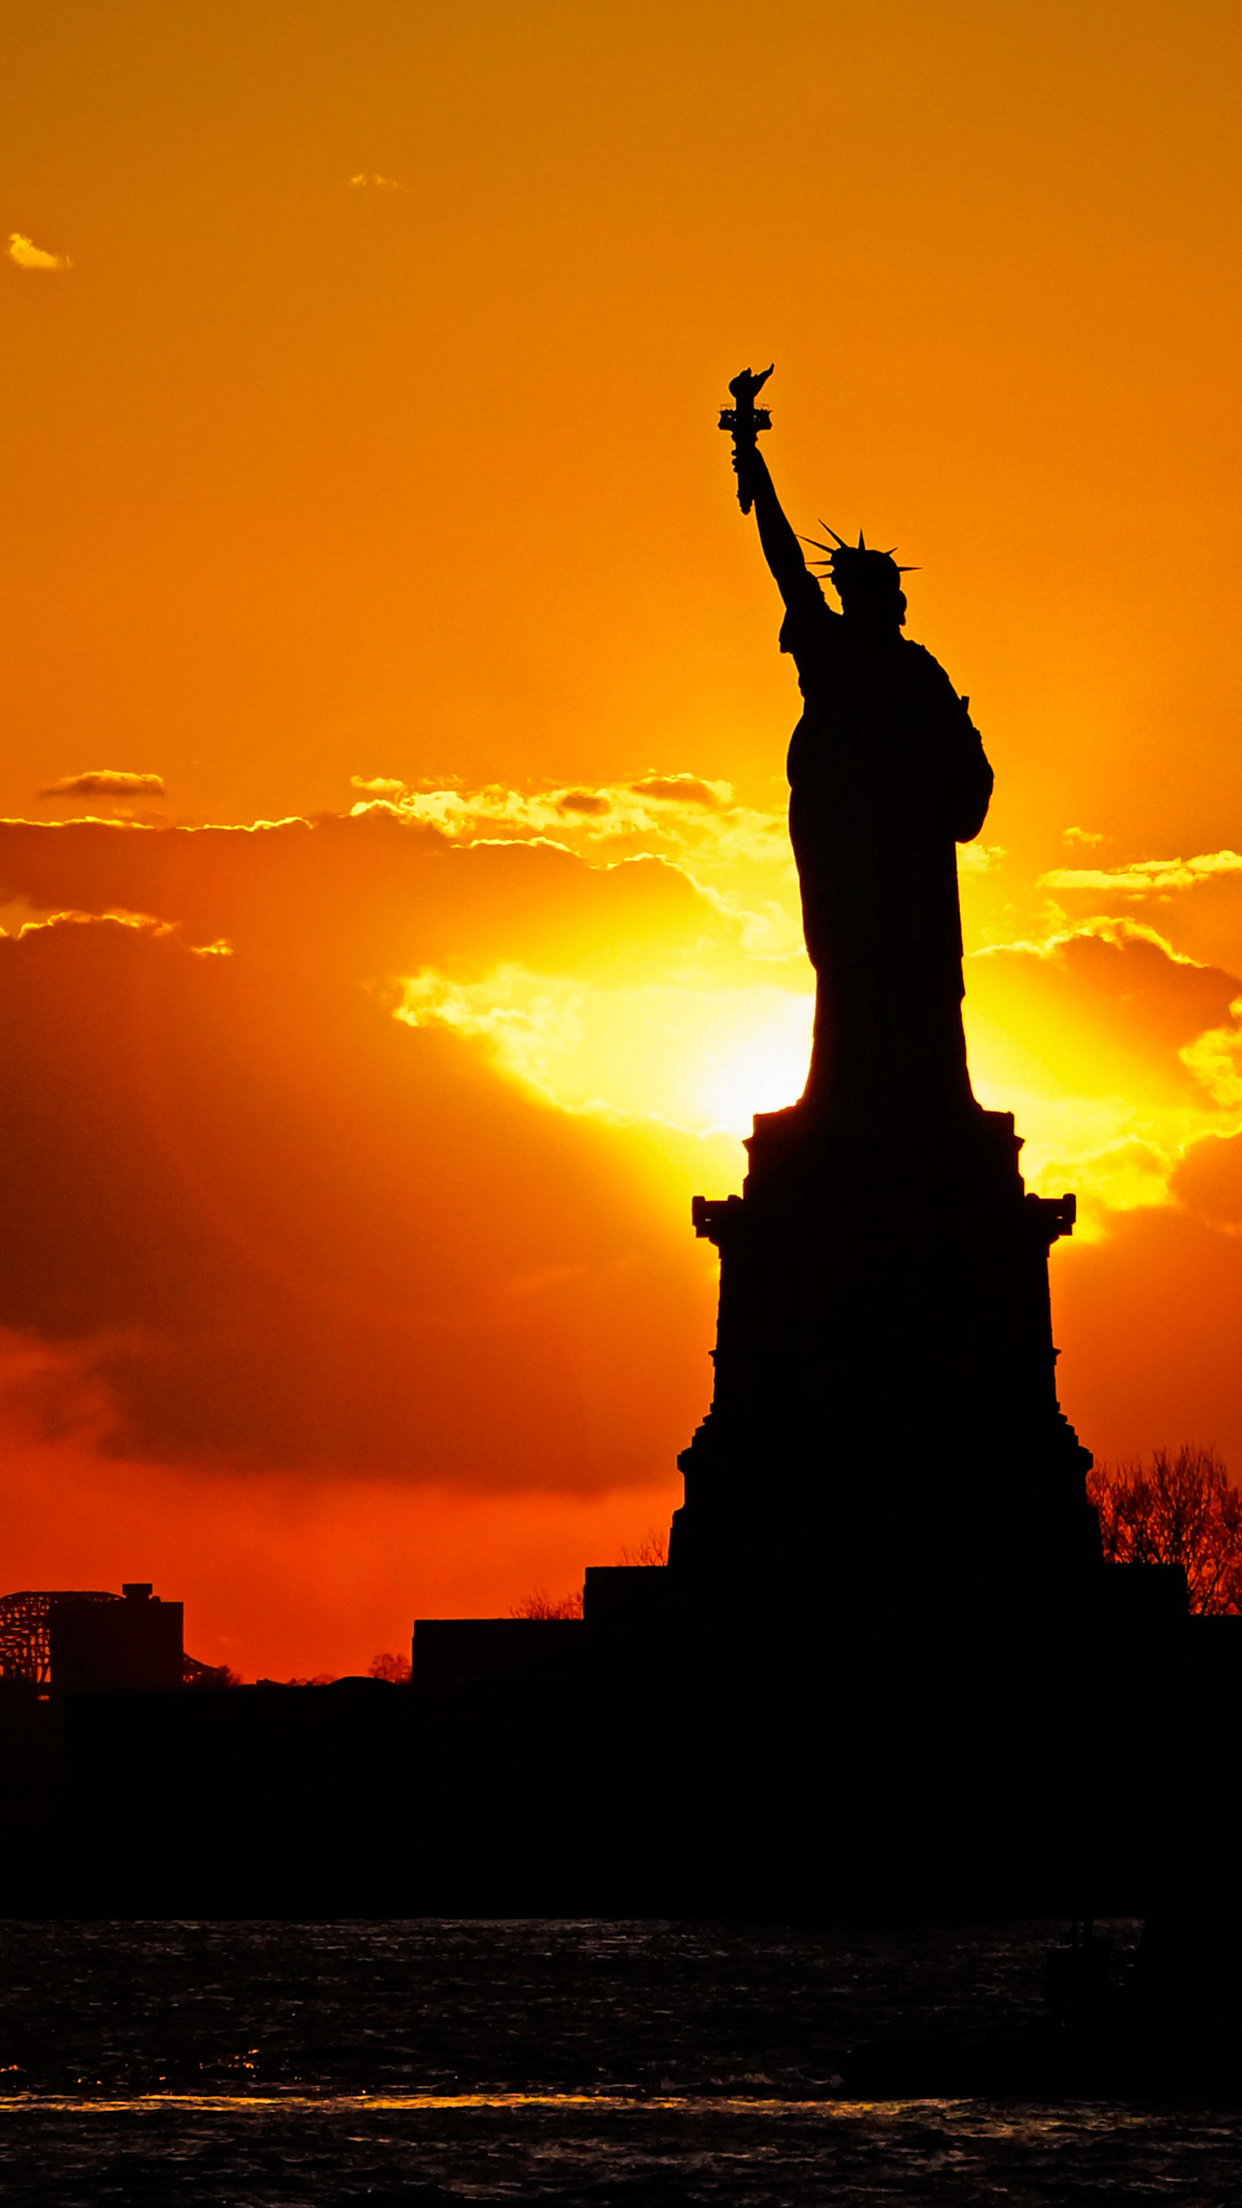 Sunset behind Statue of Liberty 3Wallpapers iPhone Parallax Sunset behind Statue of Liberty